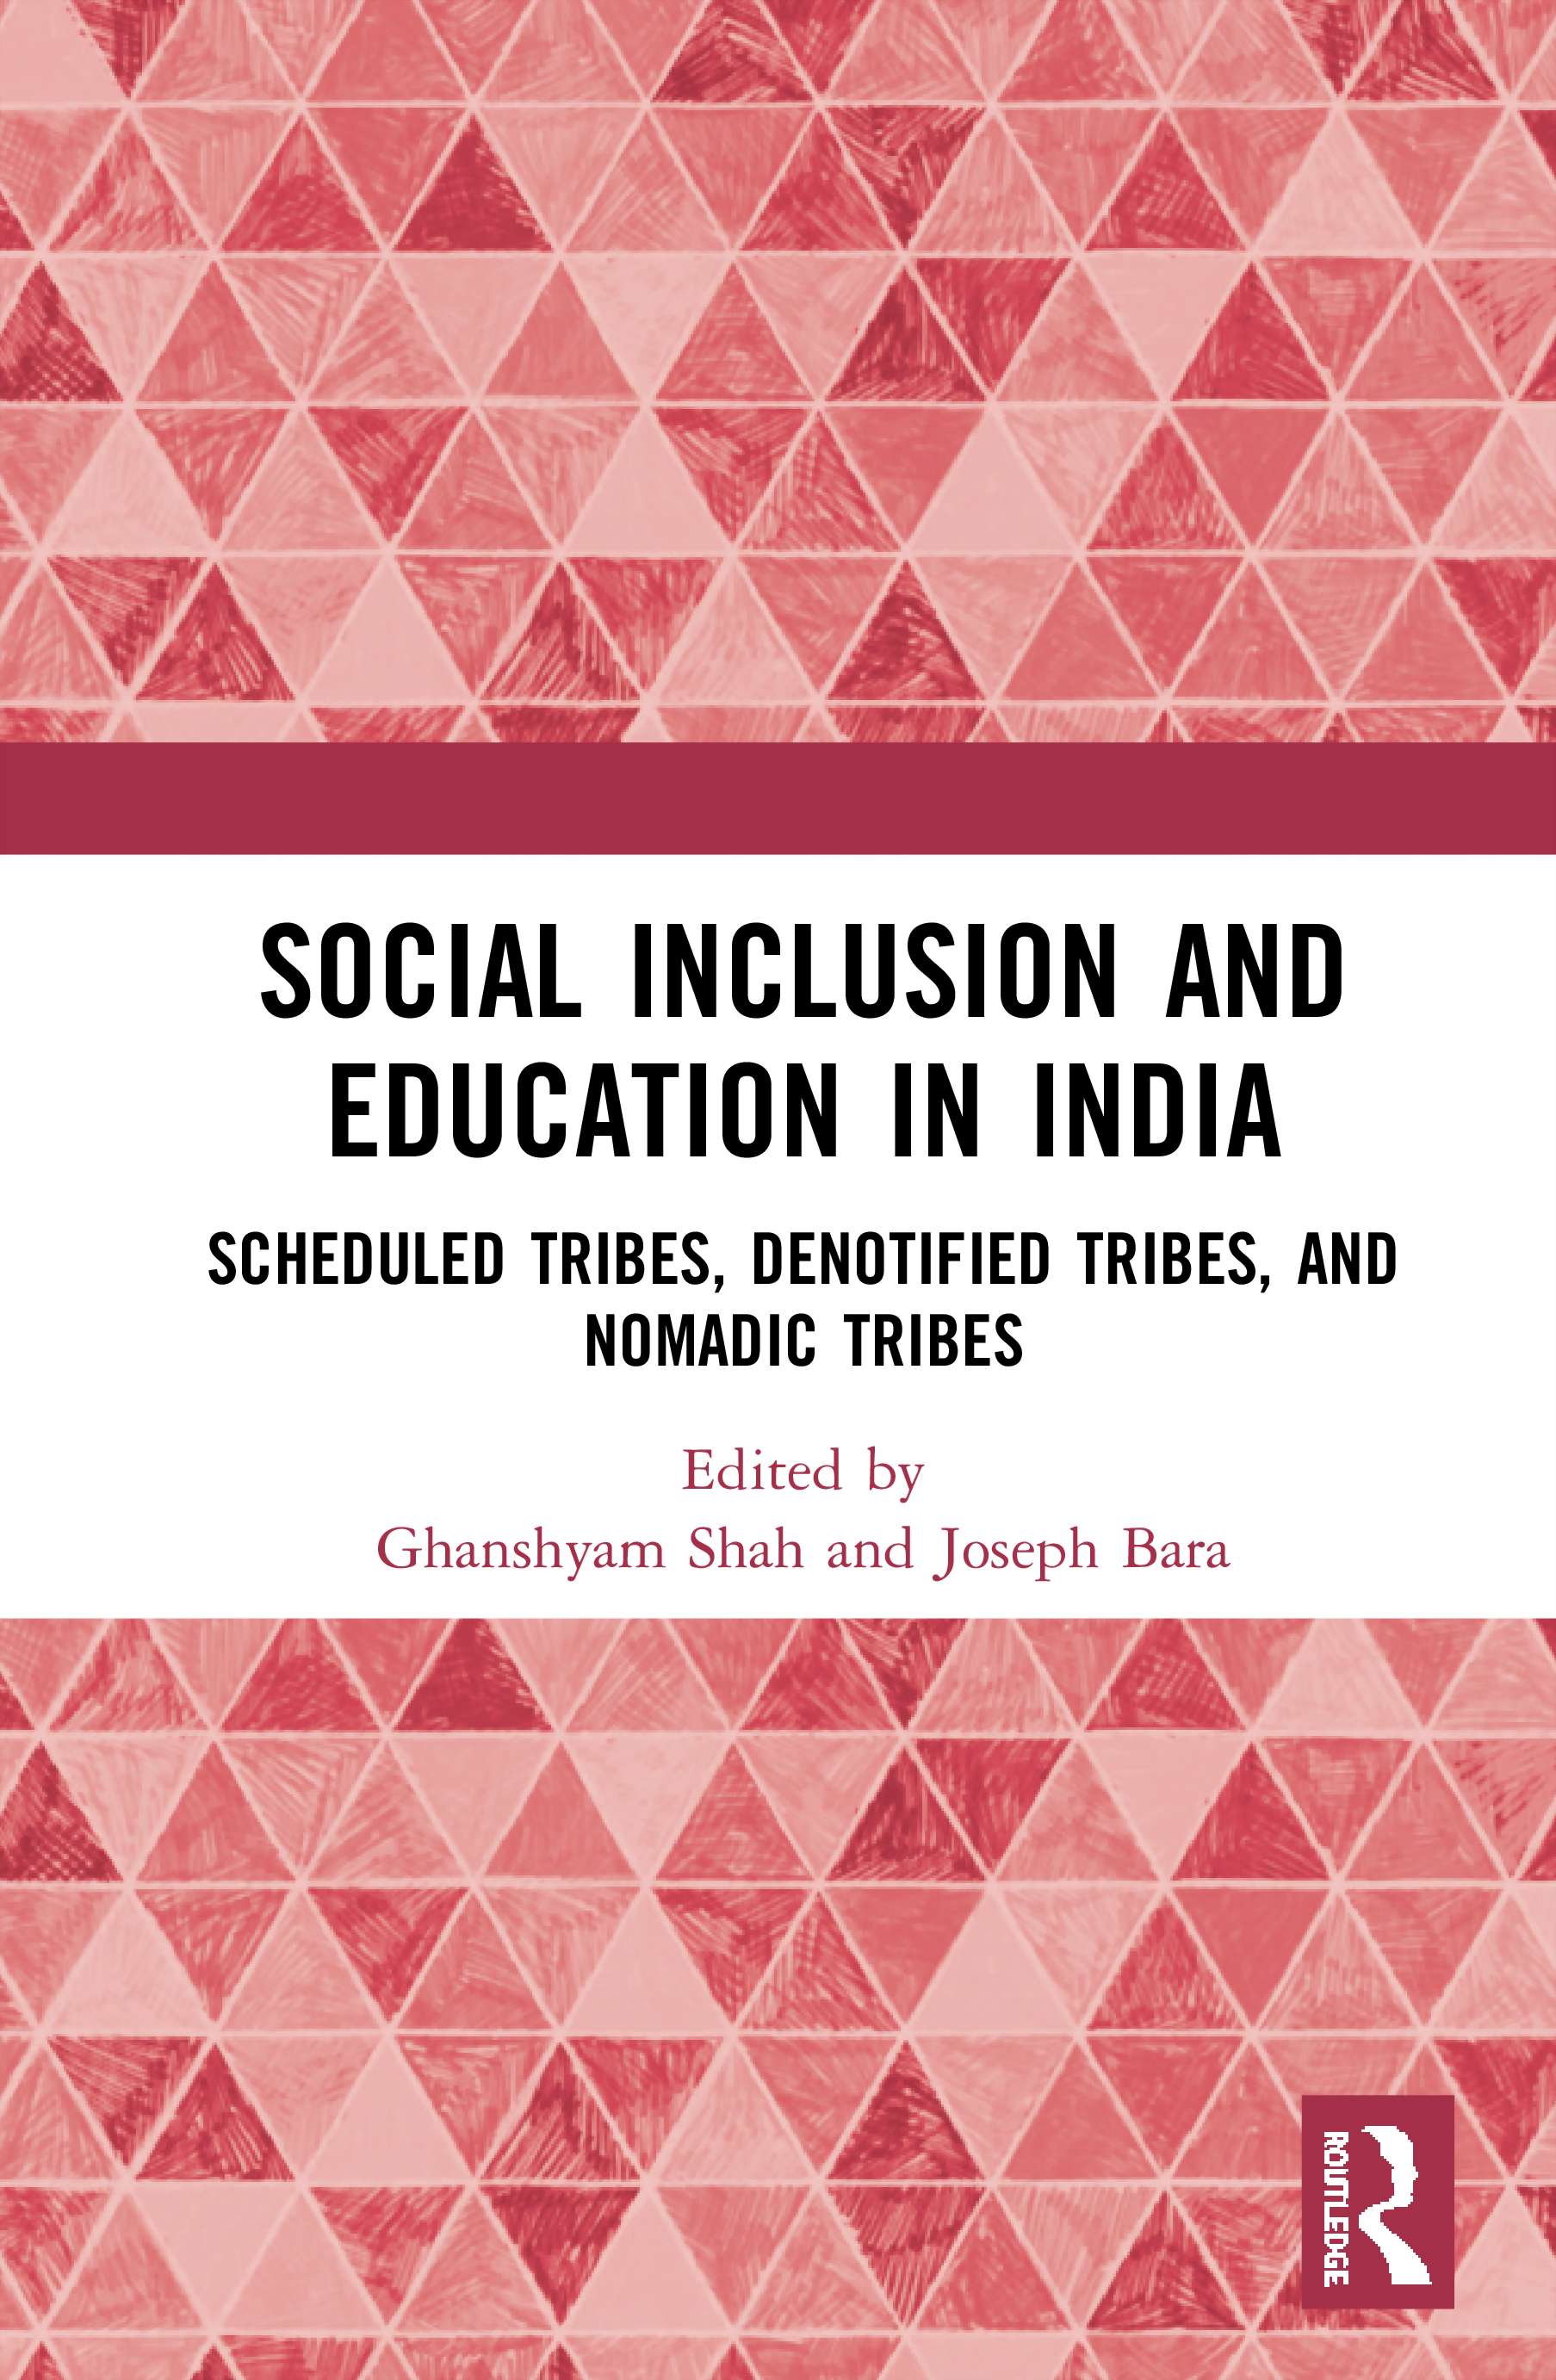 Social Inclusion and Education in India: Scheduled Tribes, Denotified Tribes, and Nomadic Tribes book cover